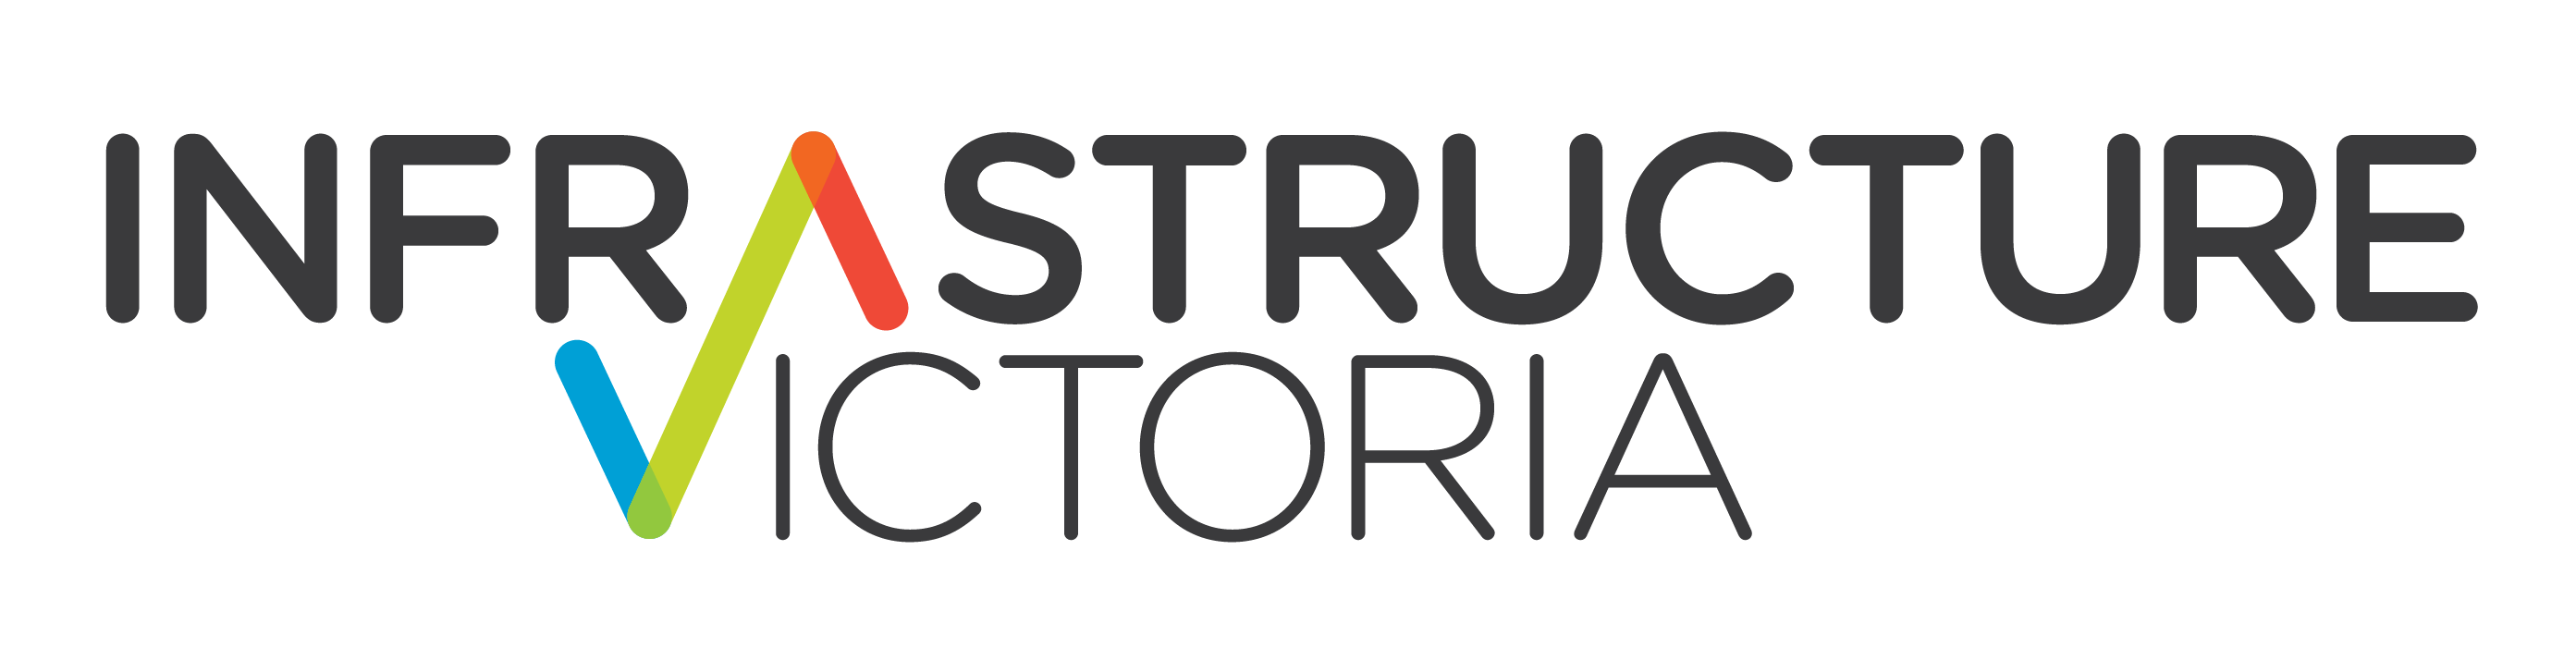 Home - Infrastructure Victoria